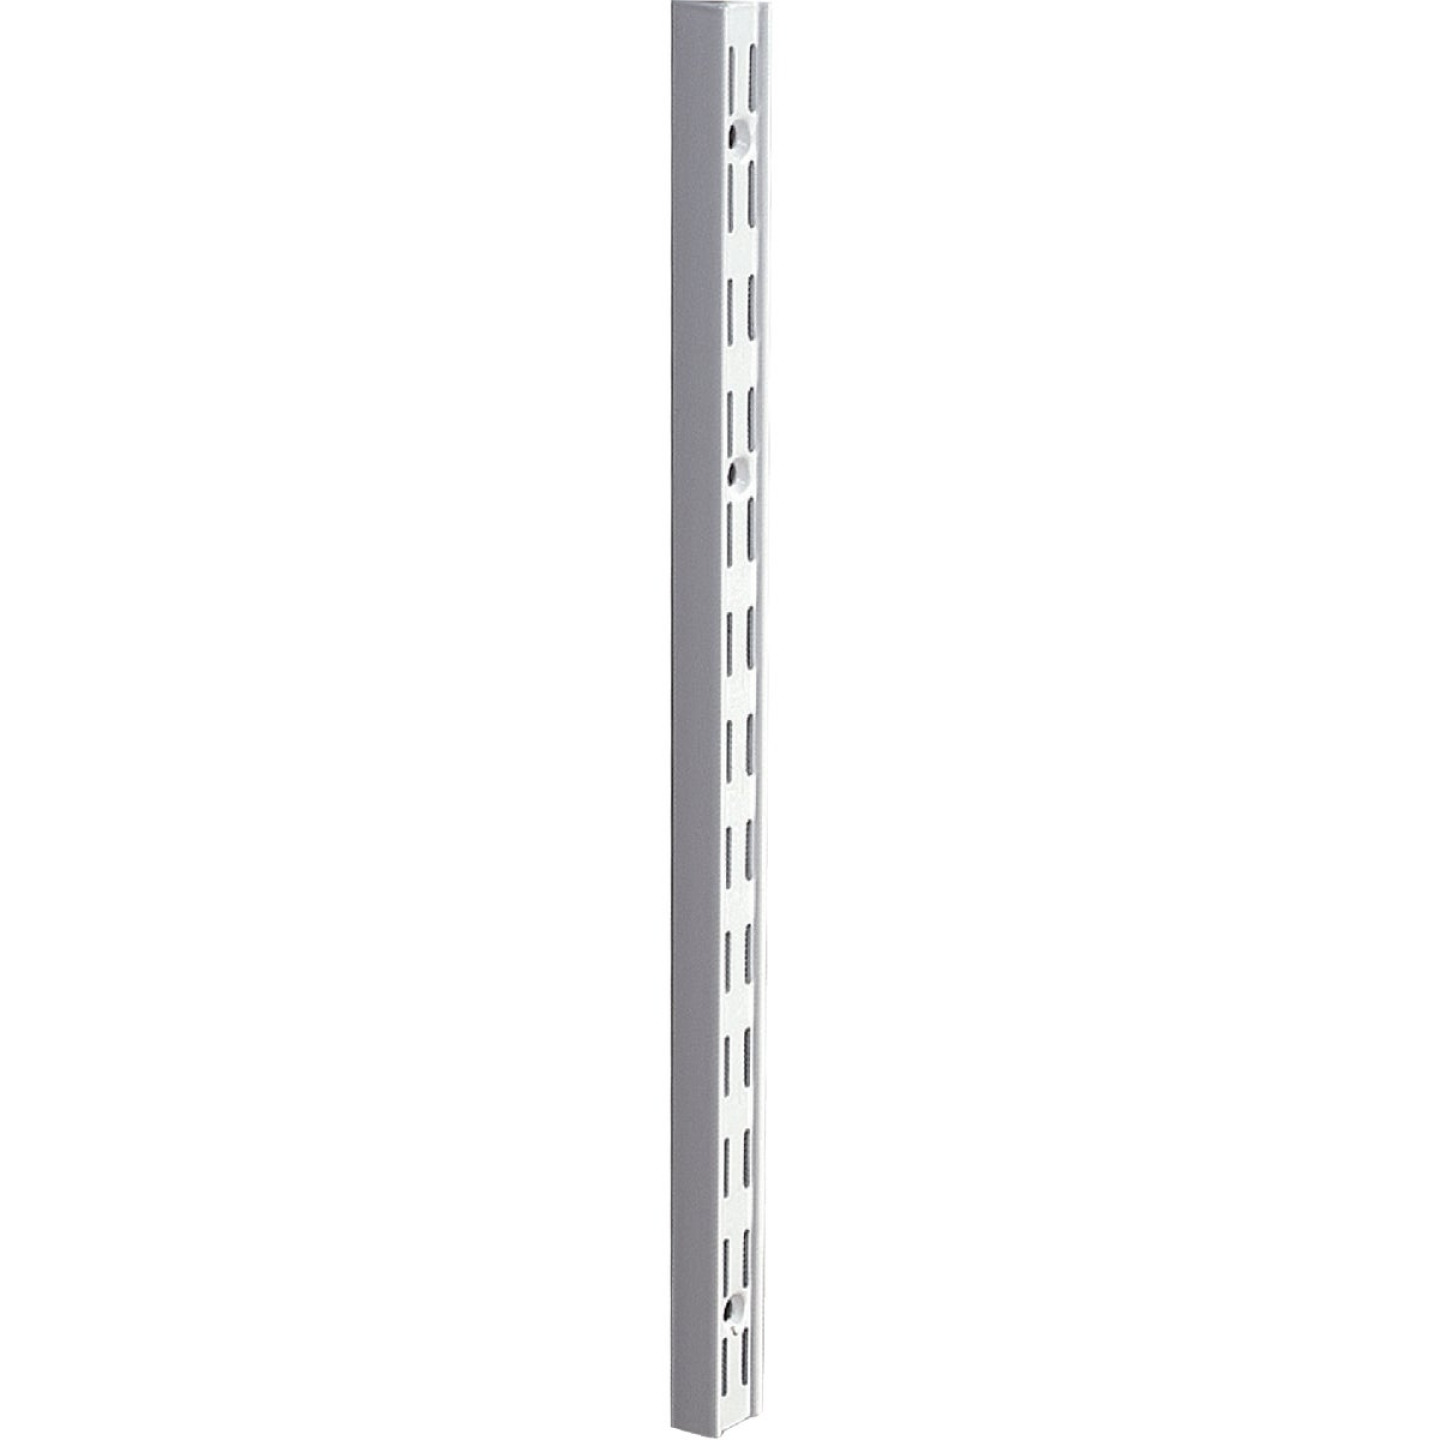 Knape & Vogt 82 Series 16-1/2 In. Titanium Steel Heavy-Duty Double-Slot Shelf Standard Image 1